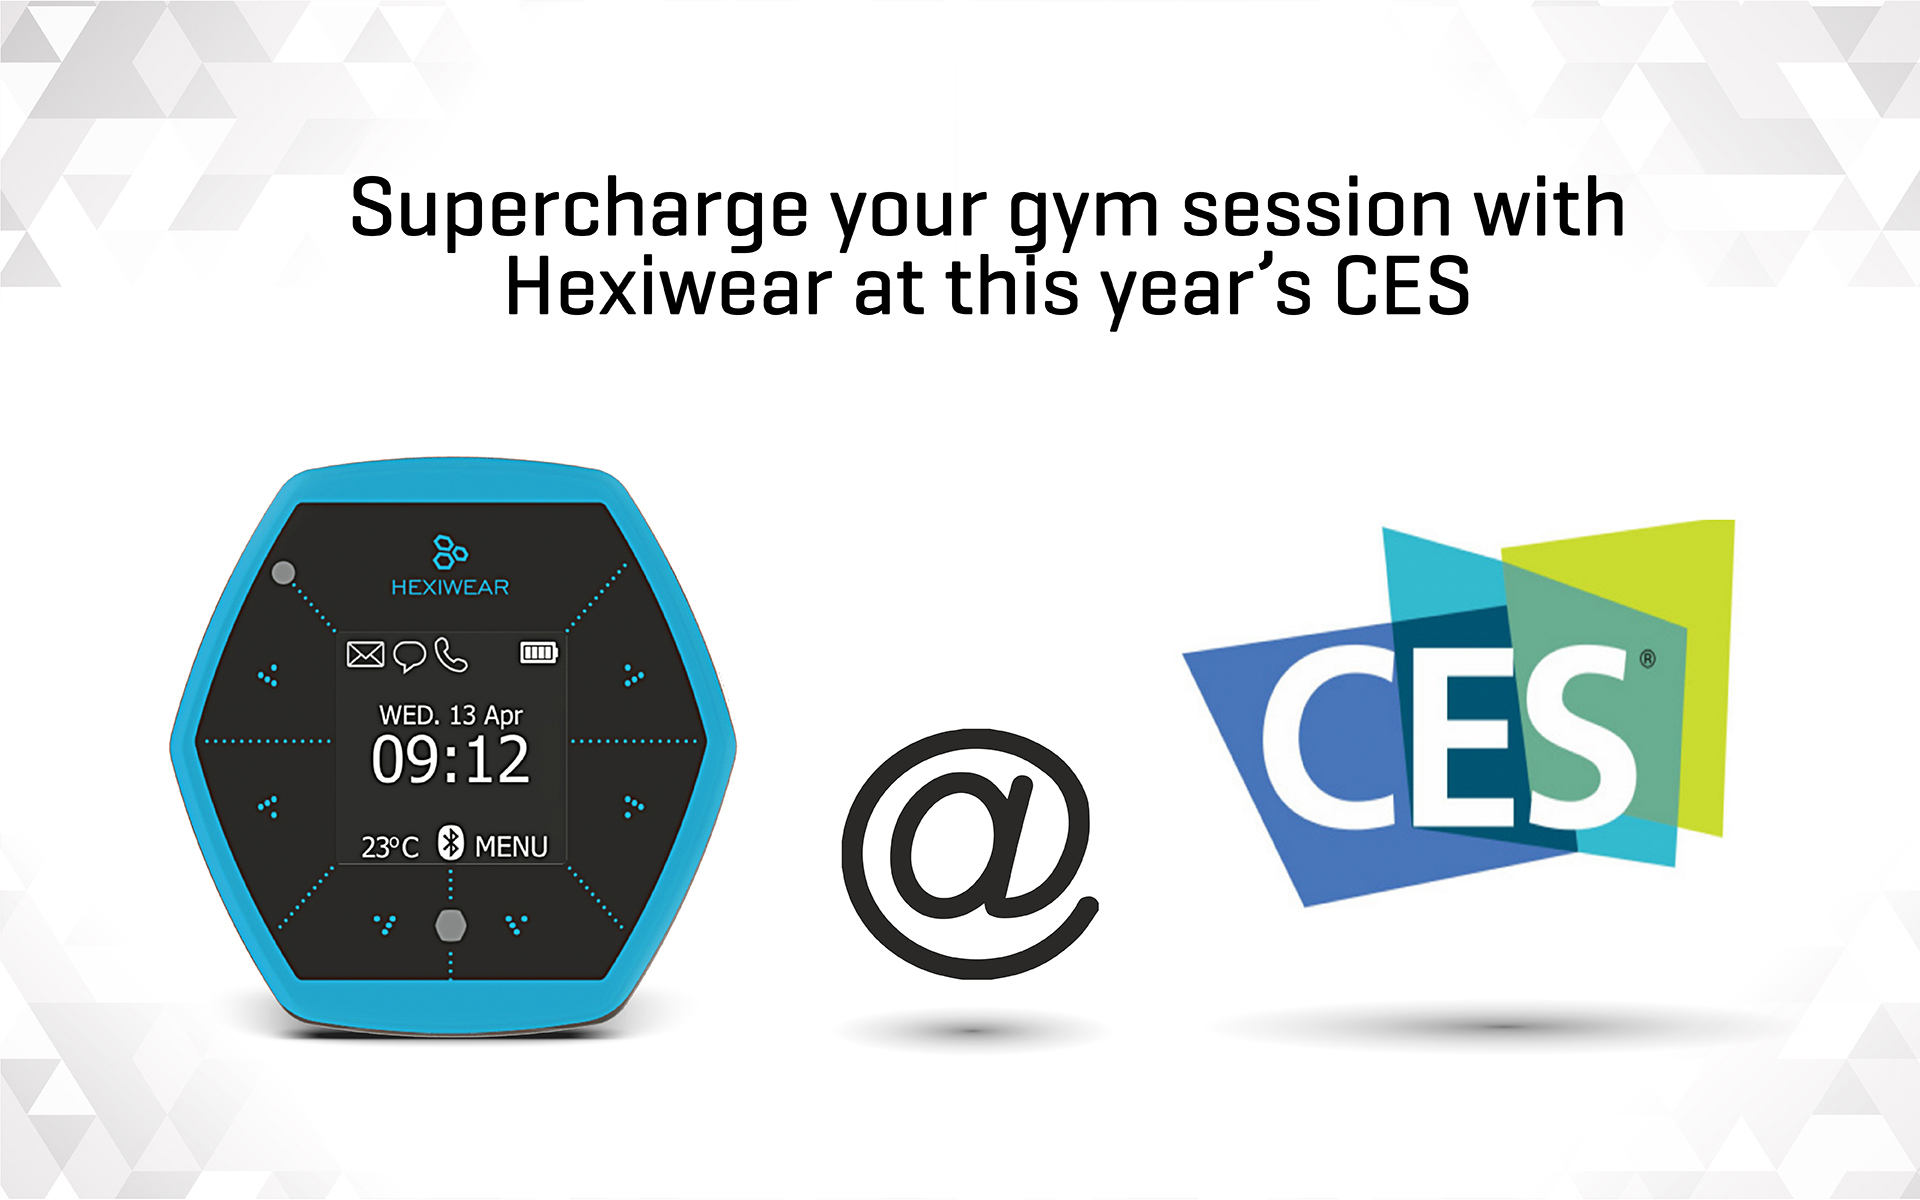 As seen at CES2017: Supercharging your gym session with Hexiwear